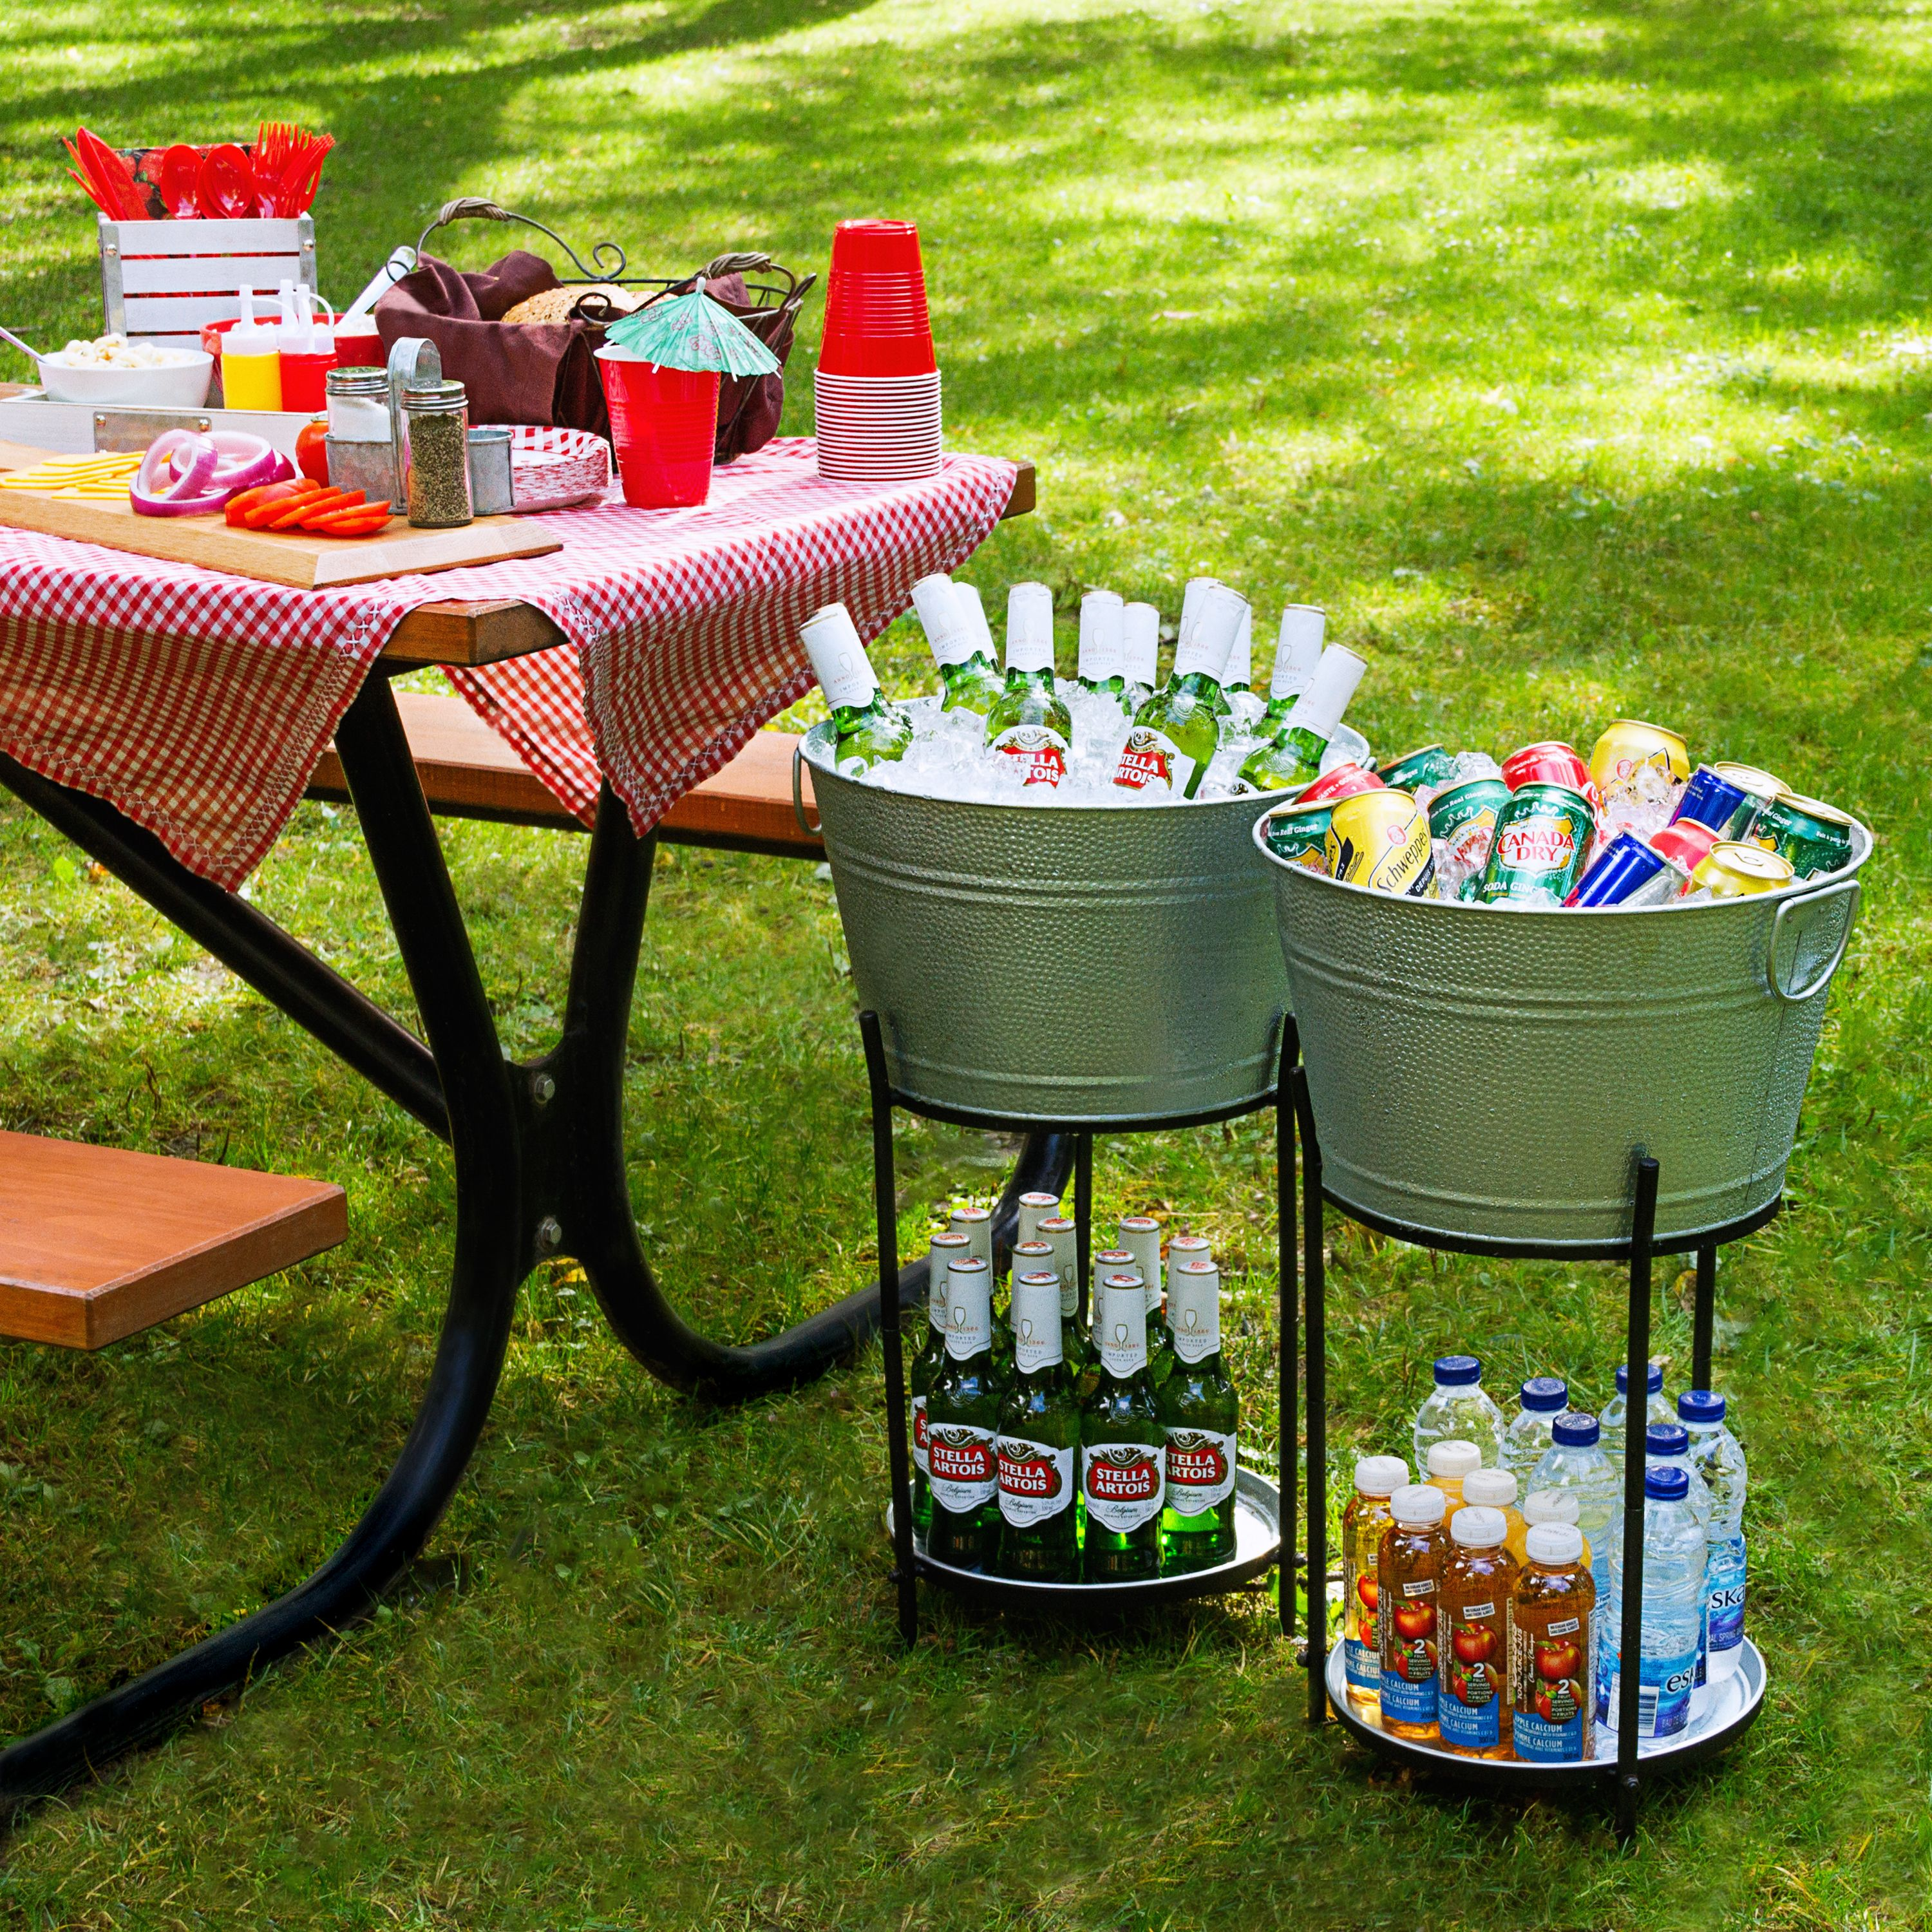 Stylish Practical And Sturdy Ice Bucket Beverage Tub That Does It S Job Keeping Drinks Cold On Ice Close By Drink Stand Beverage Tub Beverage Cooler